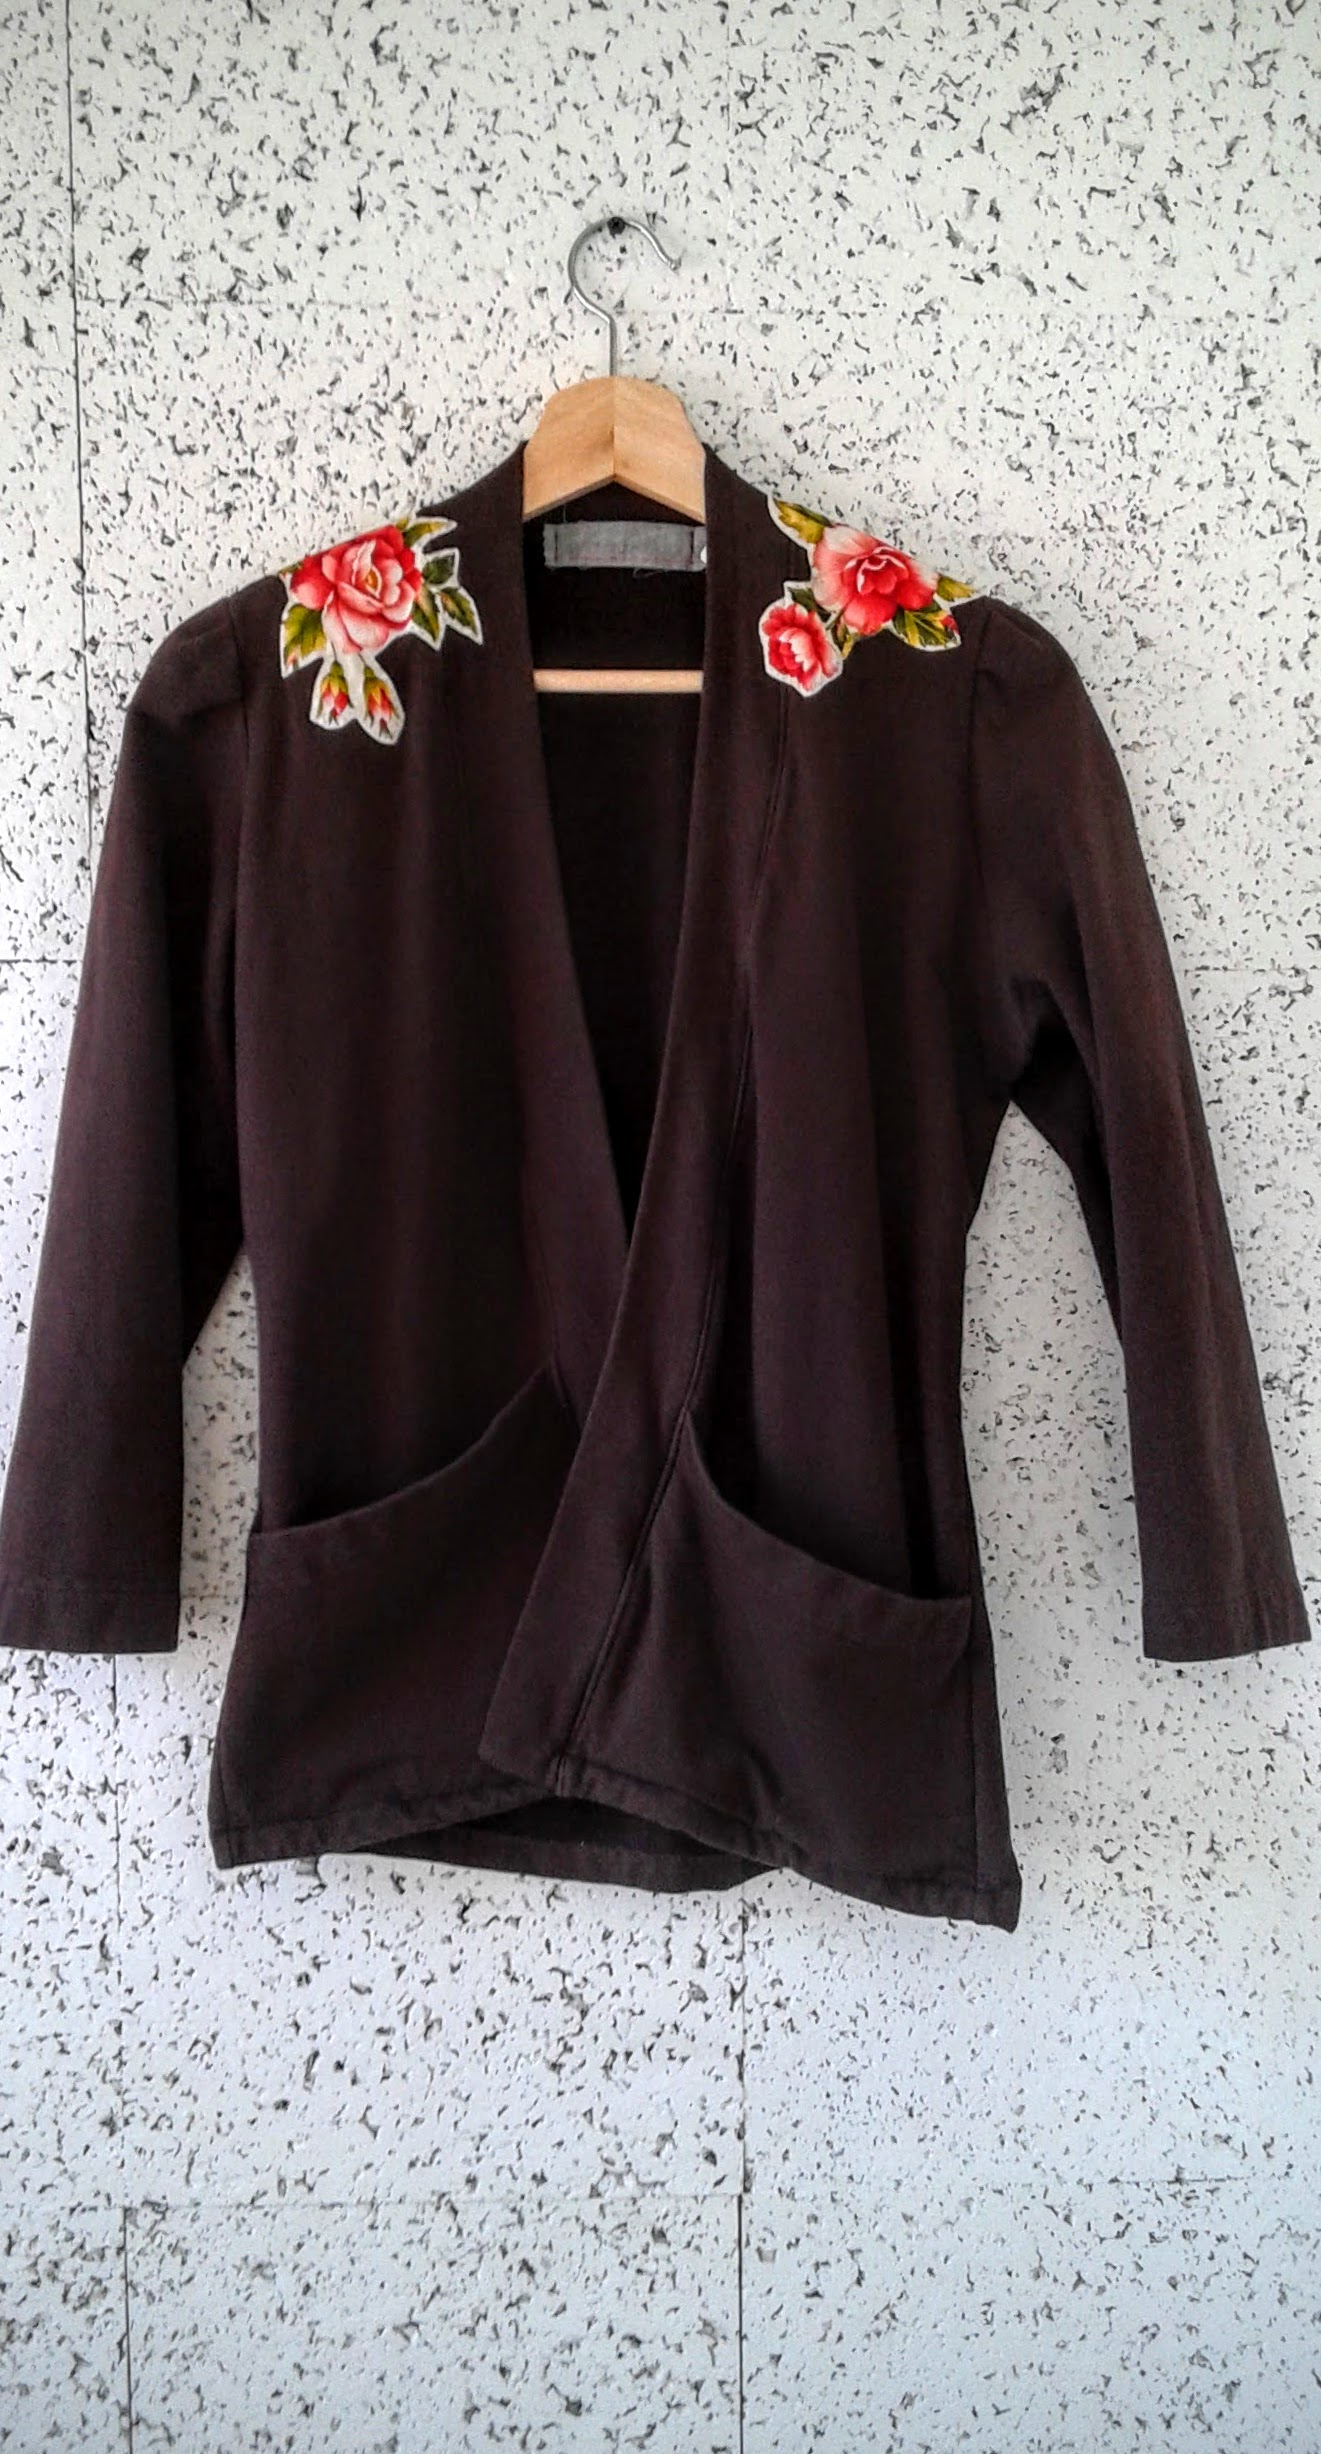 Fridget jacket; Size S, $32